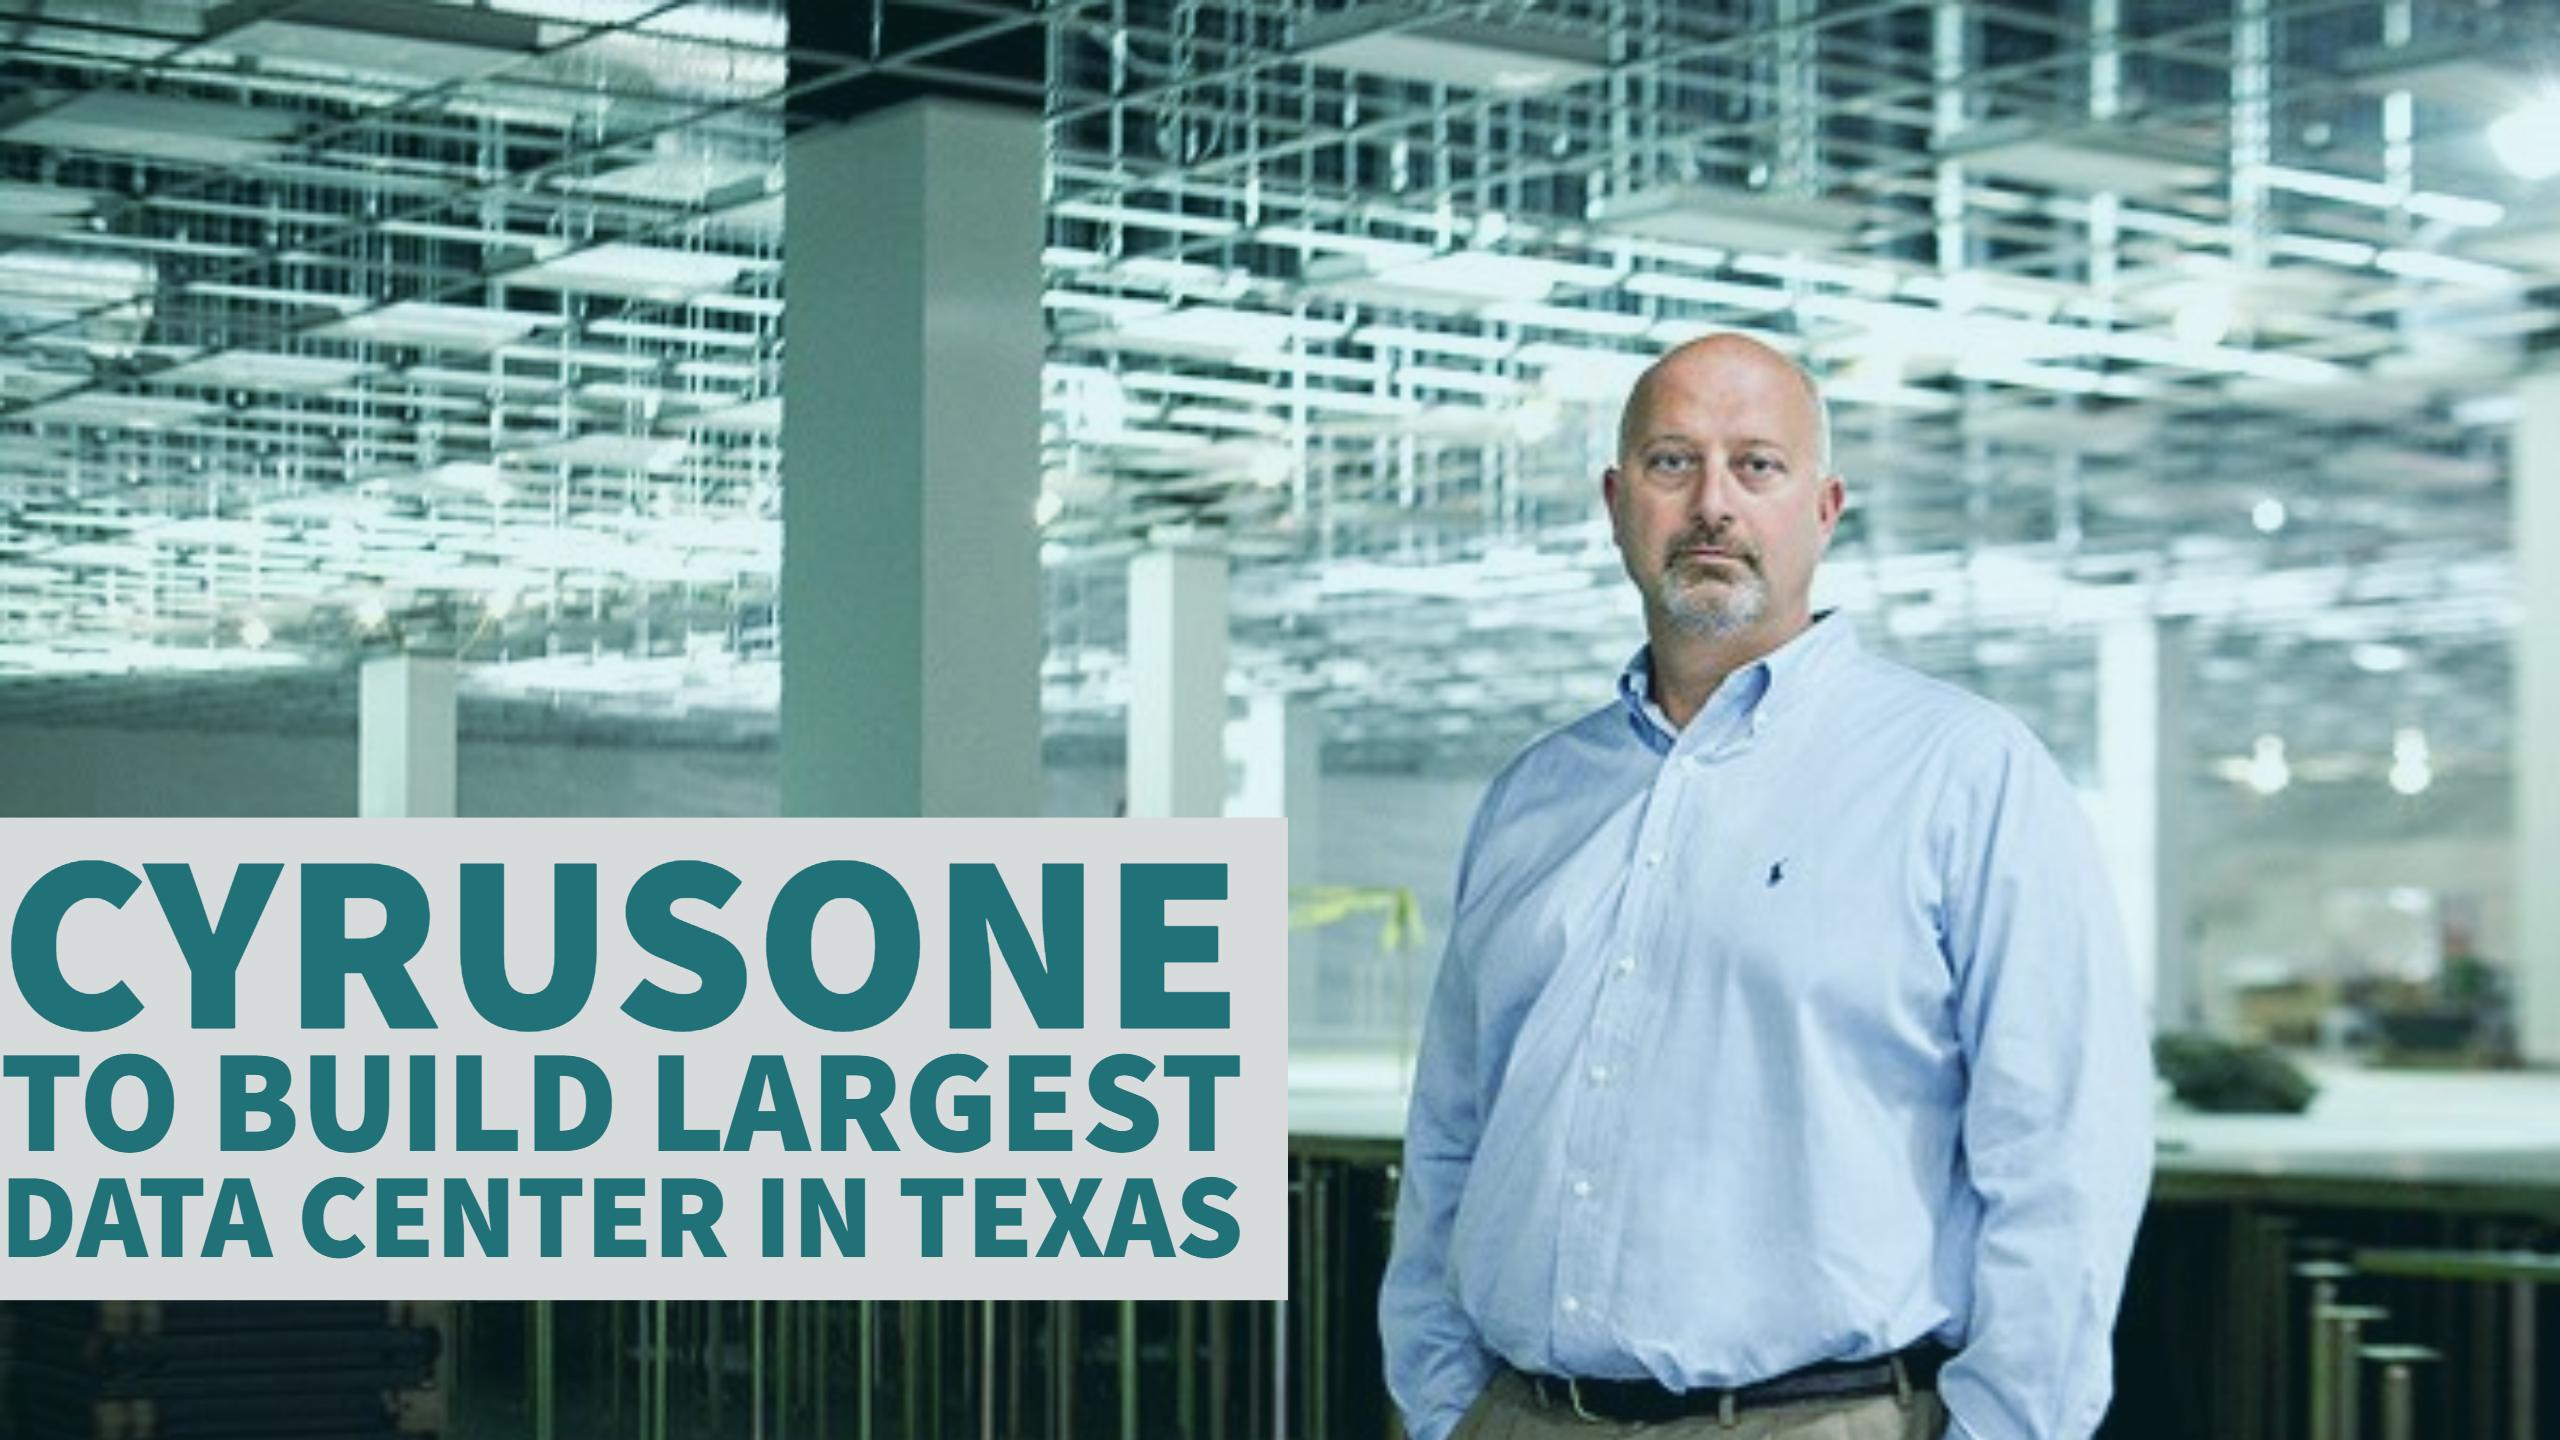 CyrusOne to Build Largest Data Center in Texas